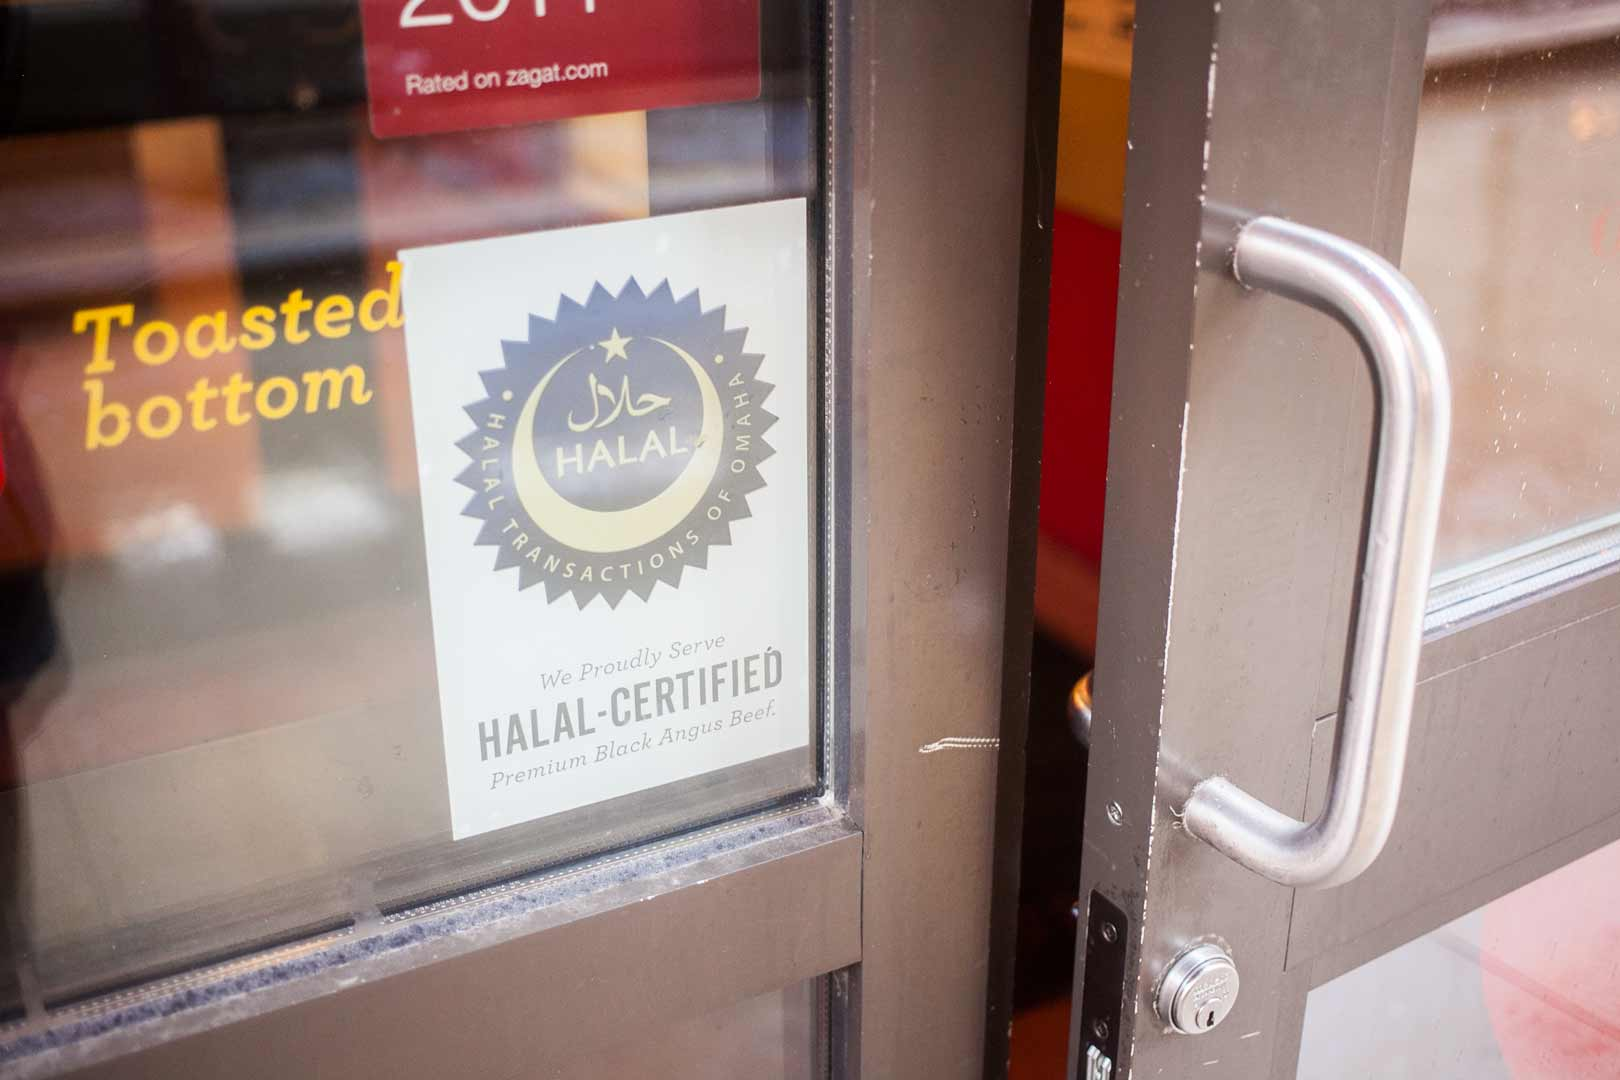 epic_burger_halal_friendly_06_door_sign